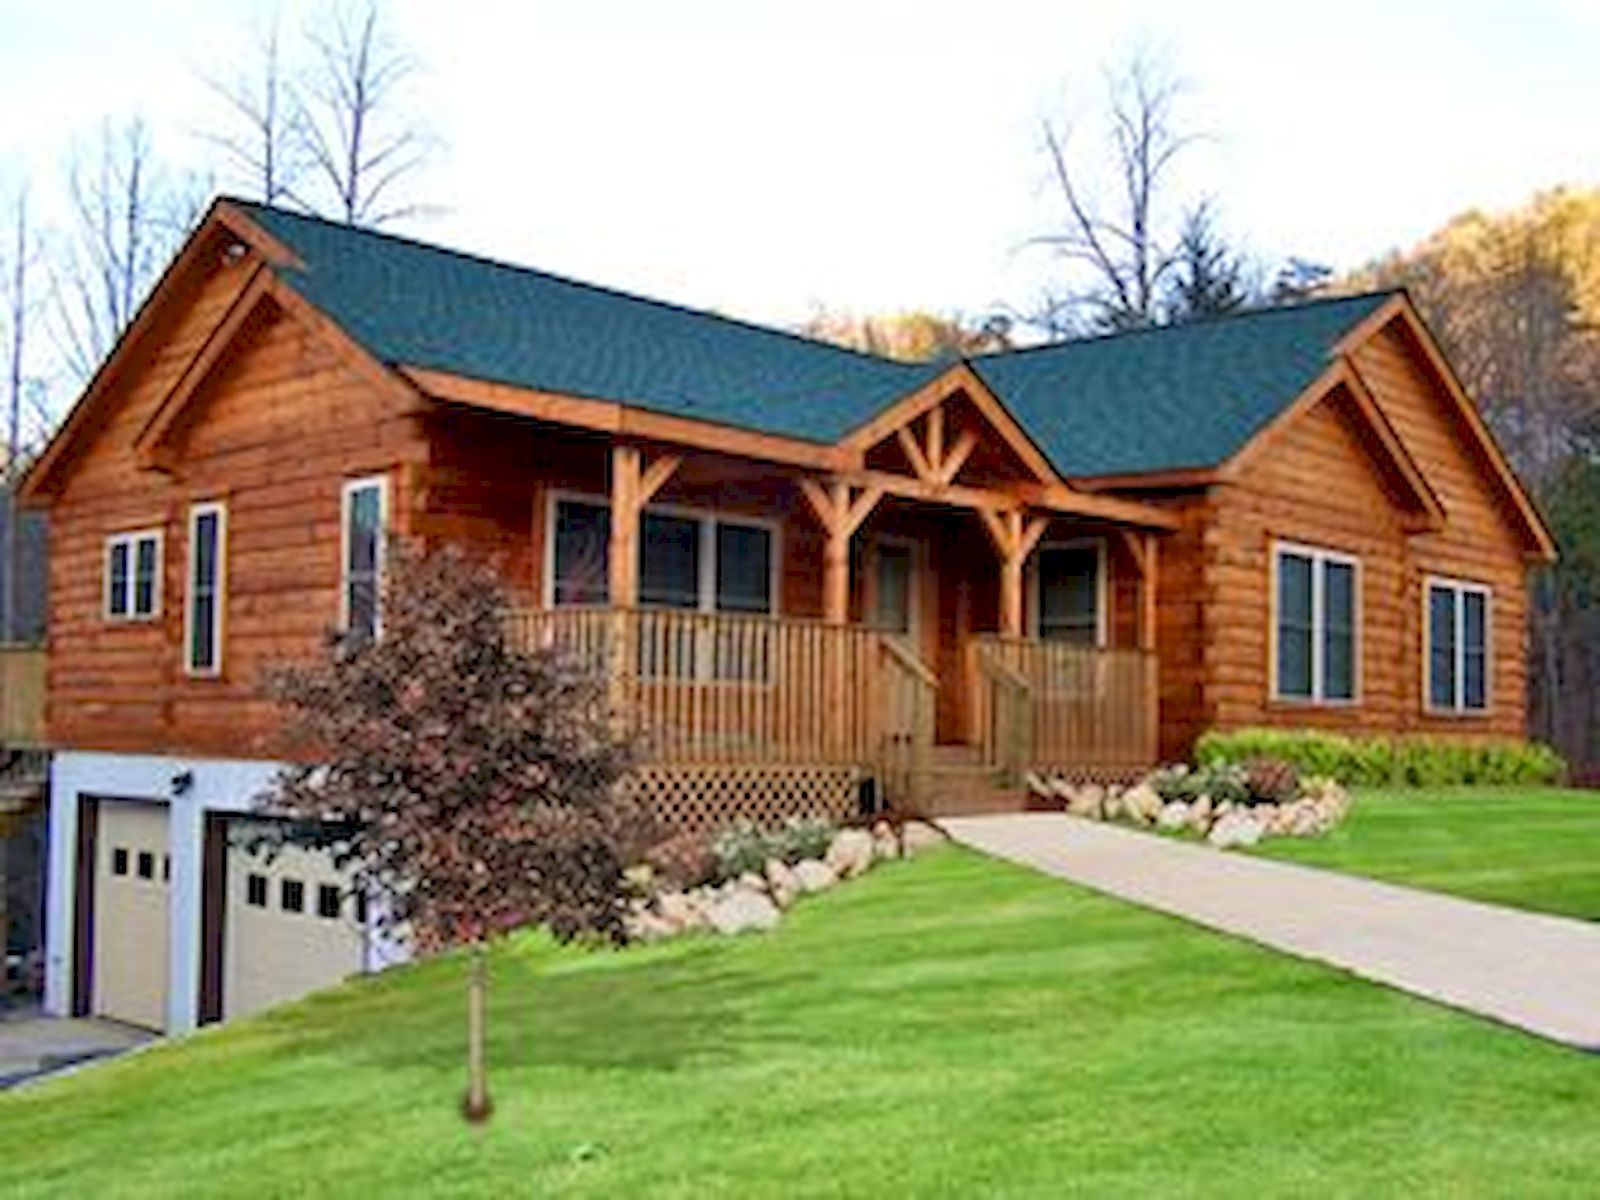 Pin By Amie Benson On Log Homes Log Cabin Floor Plans Modular Log Cabin Log Cabin Homes